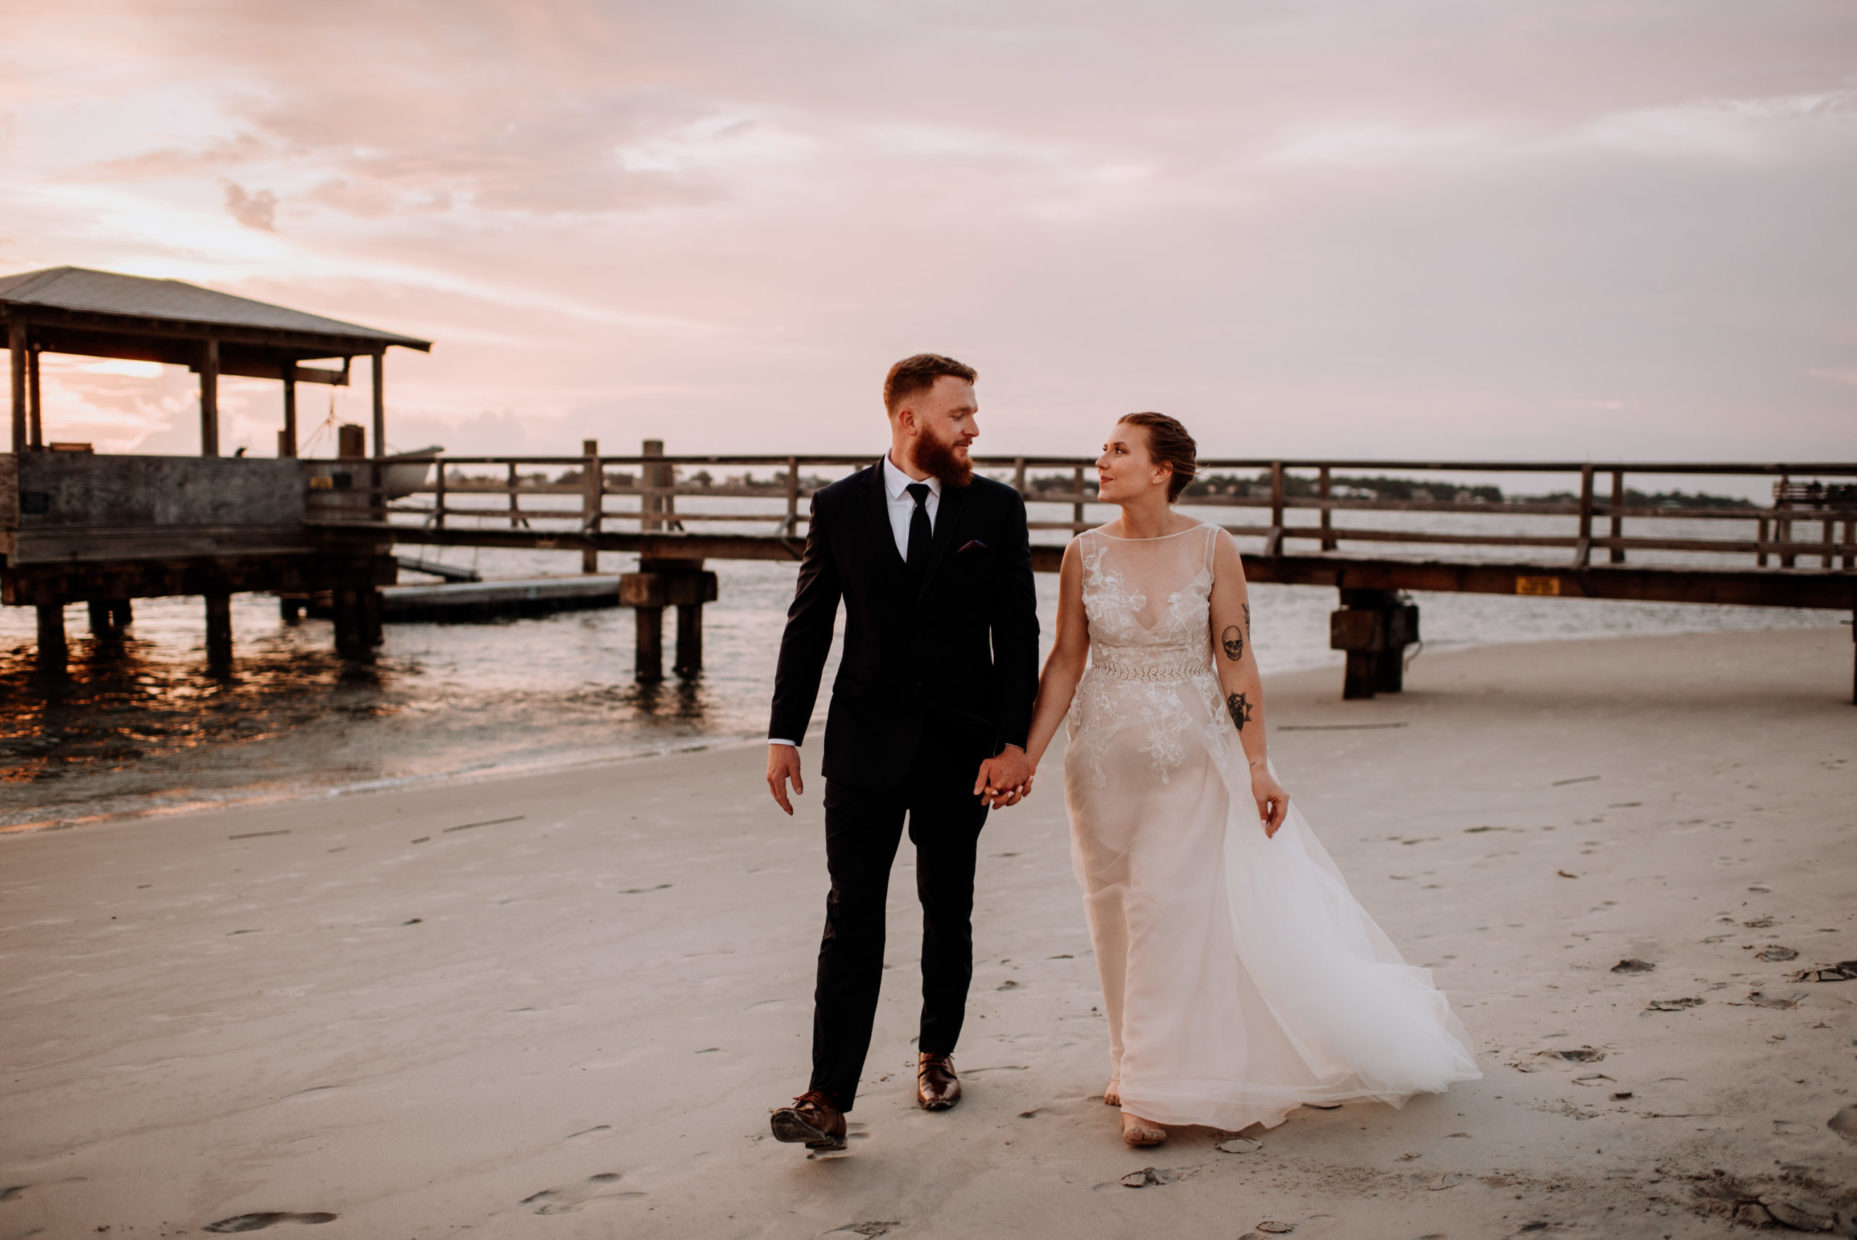 bride and groom walking along beach at sunset